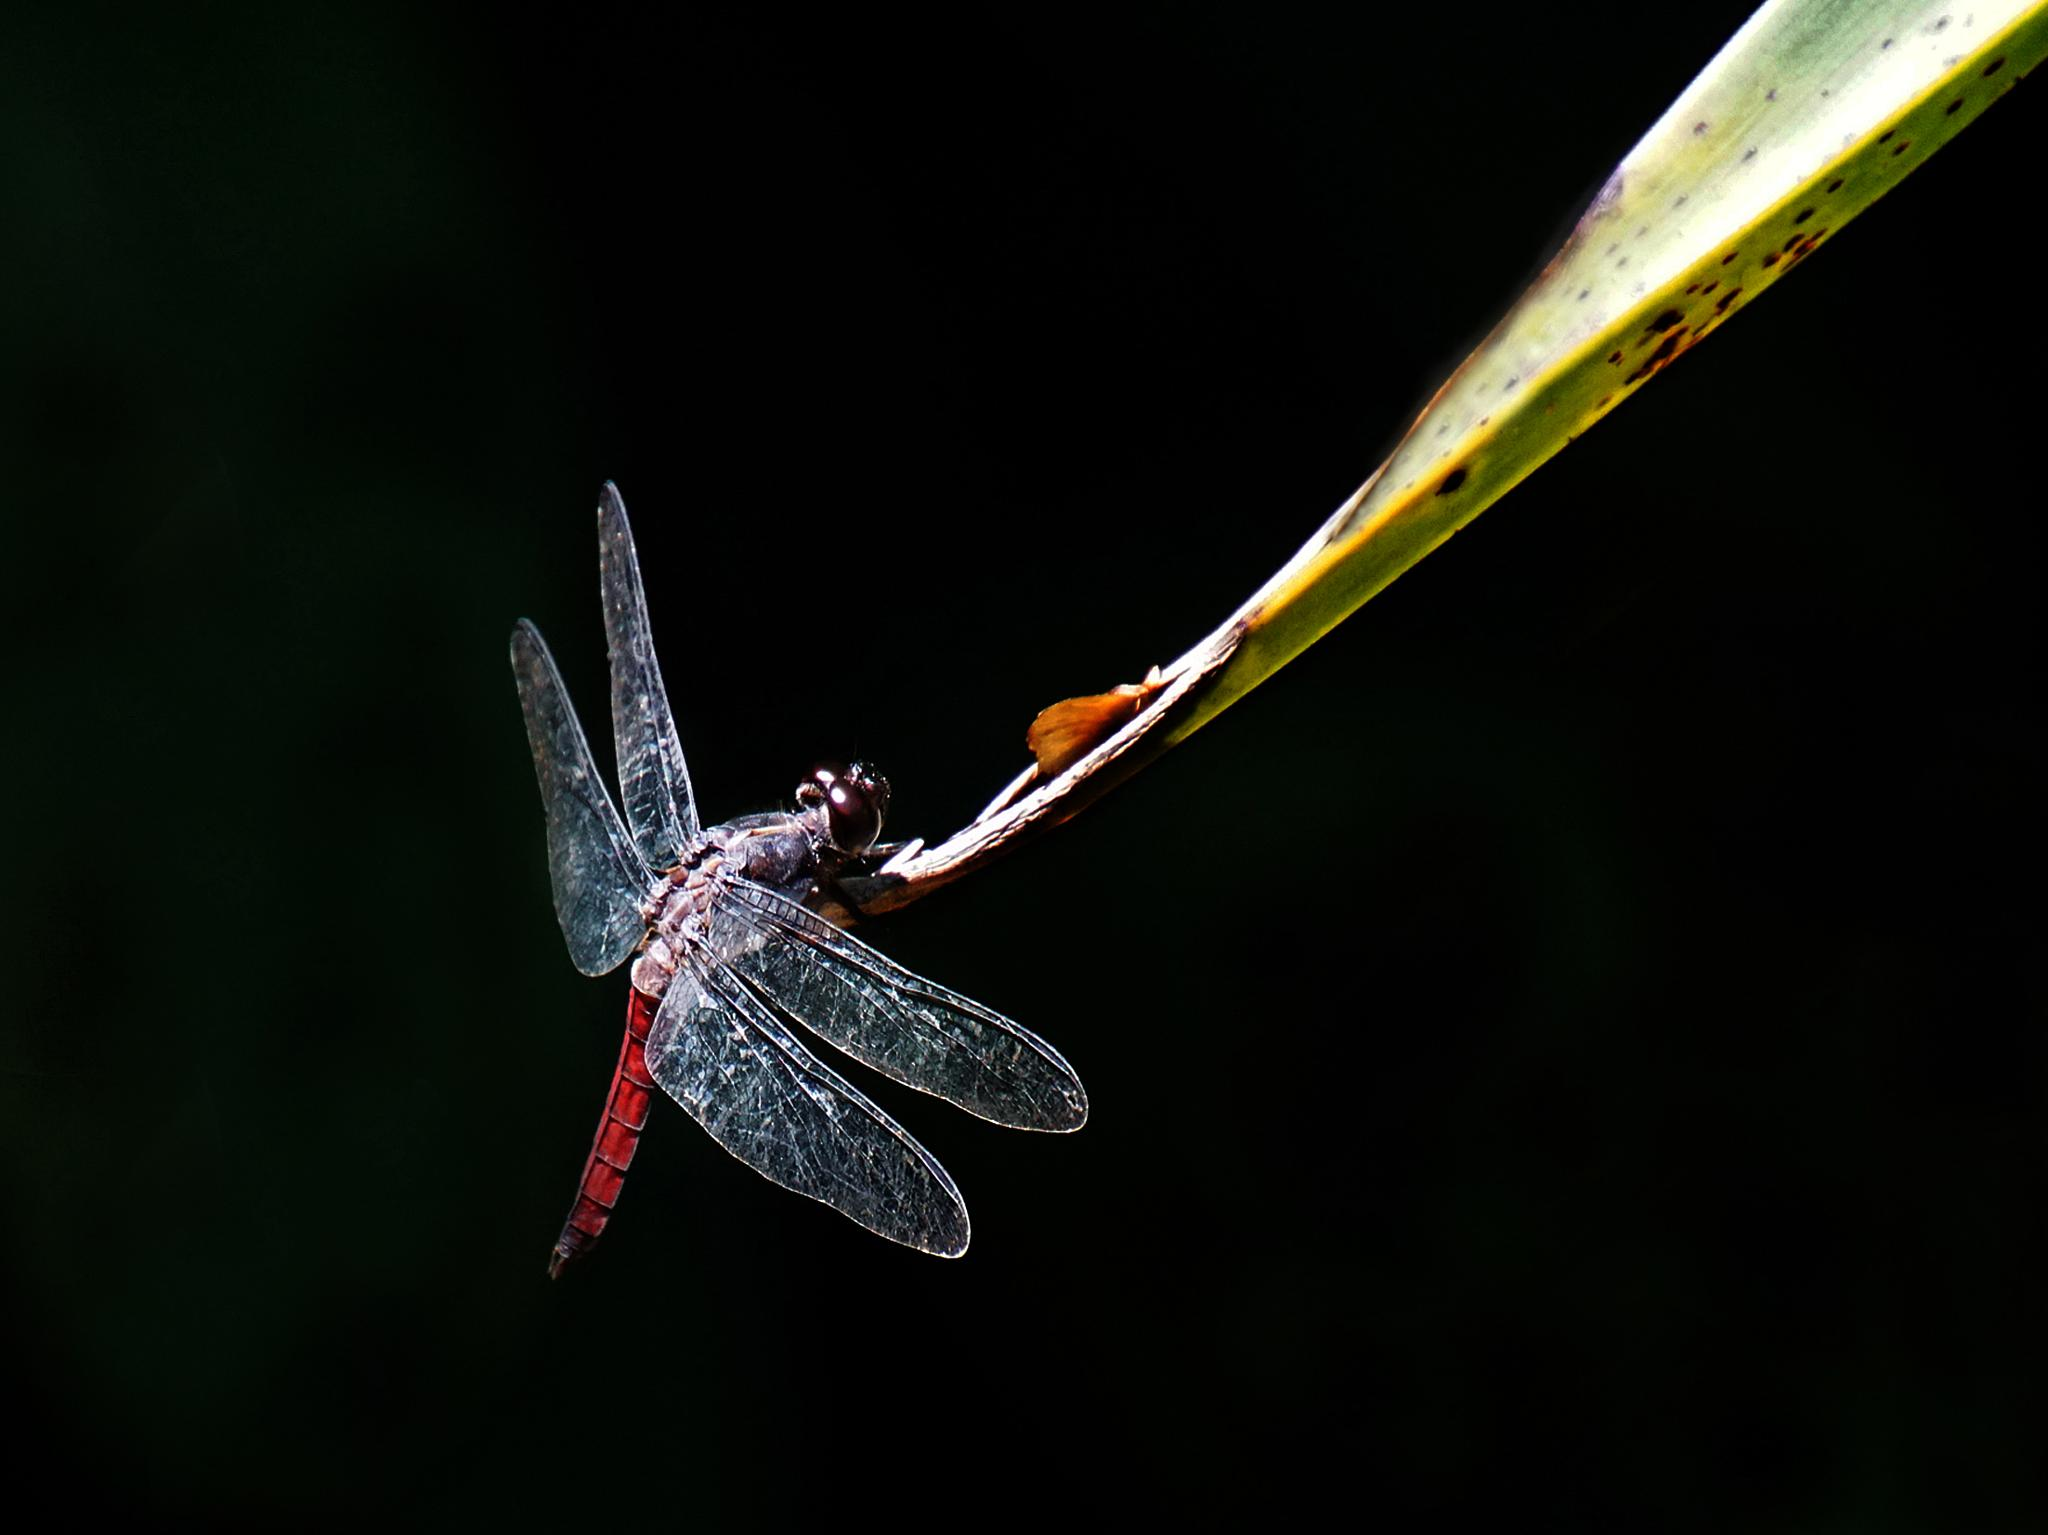 Dragonfly by Elly Versteeg